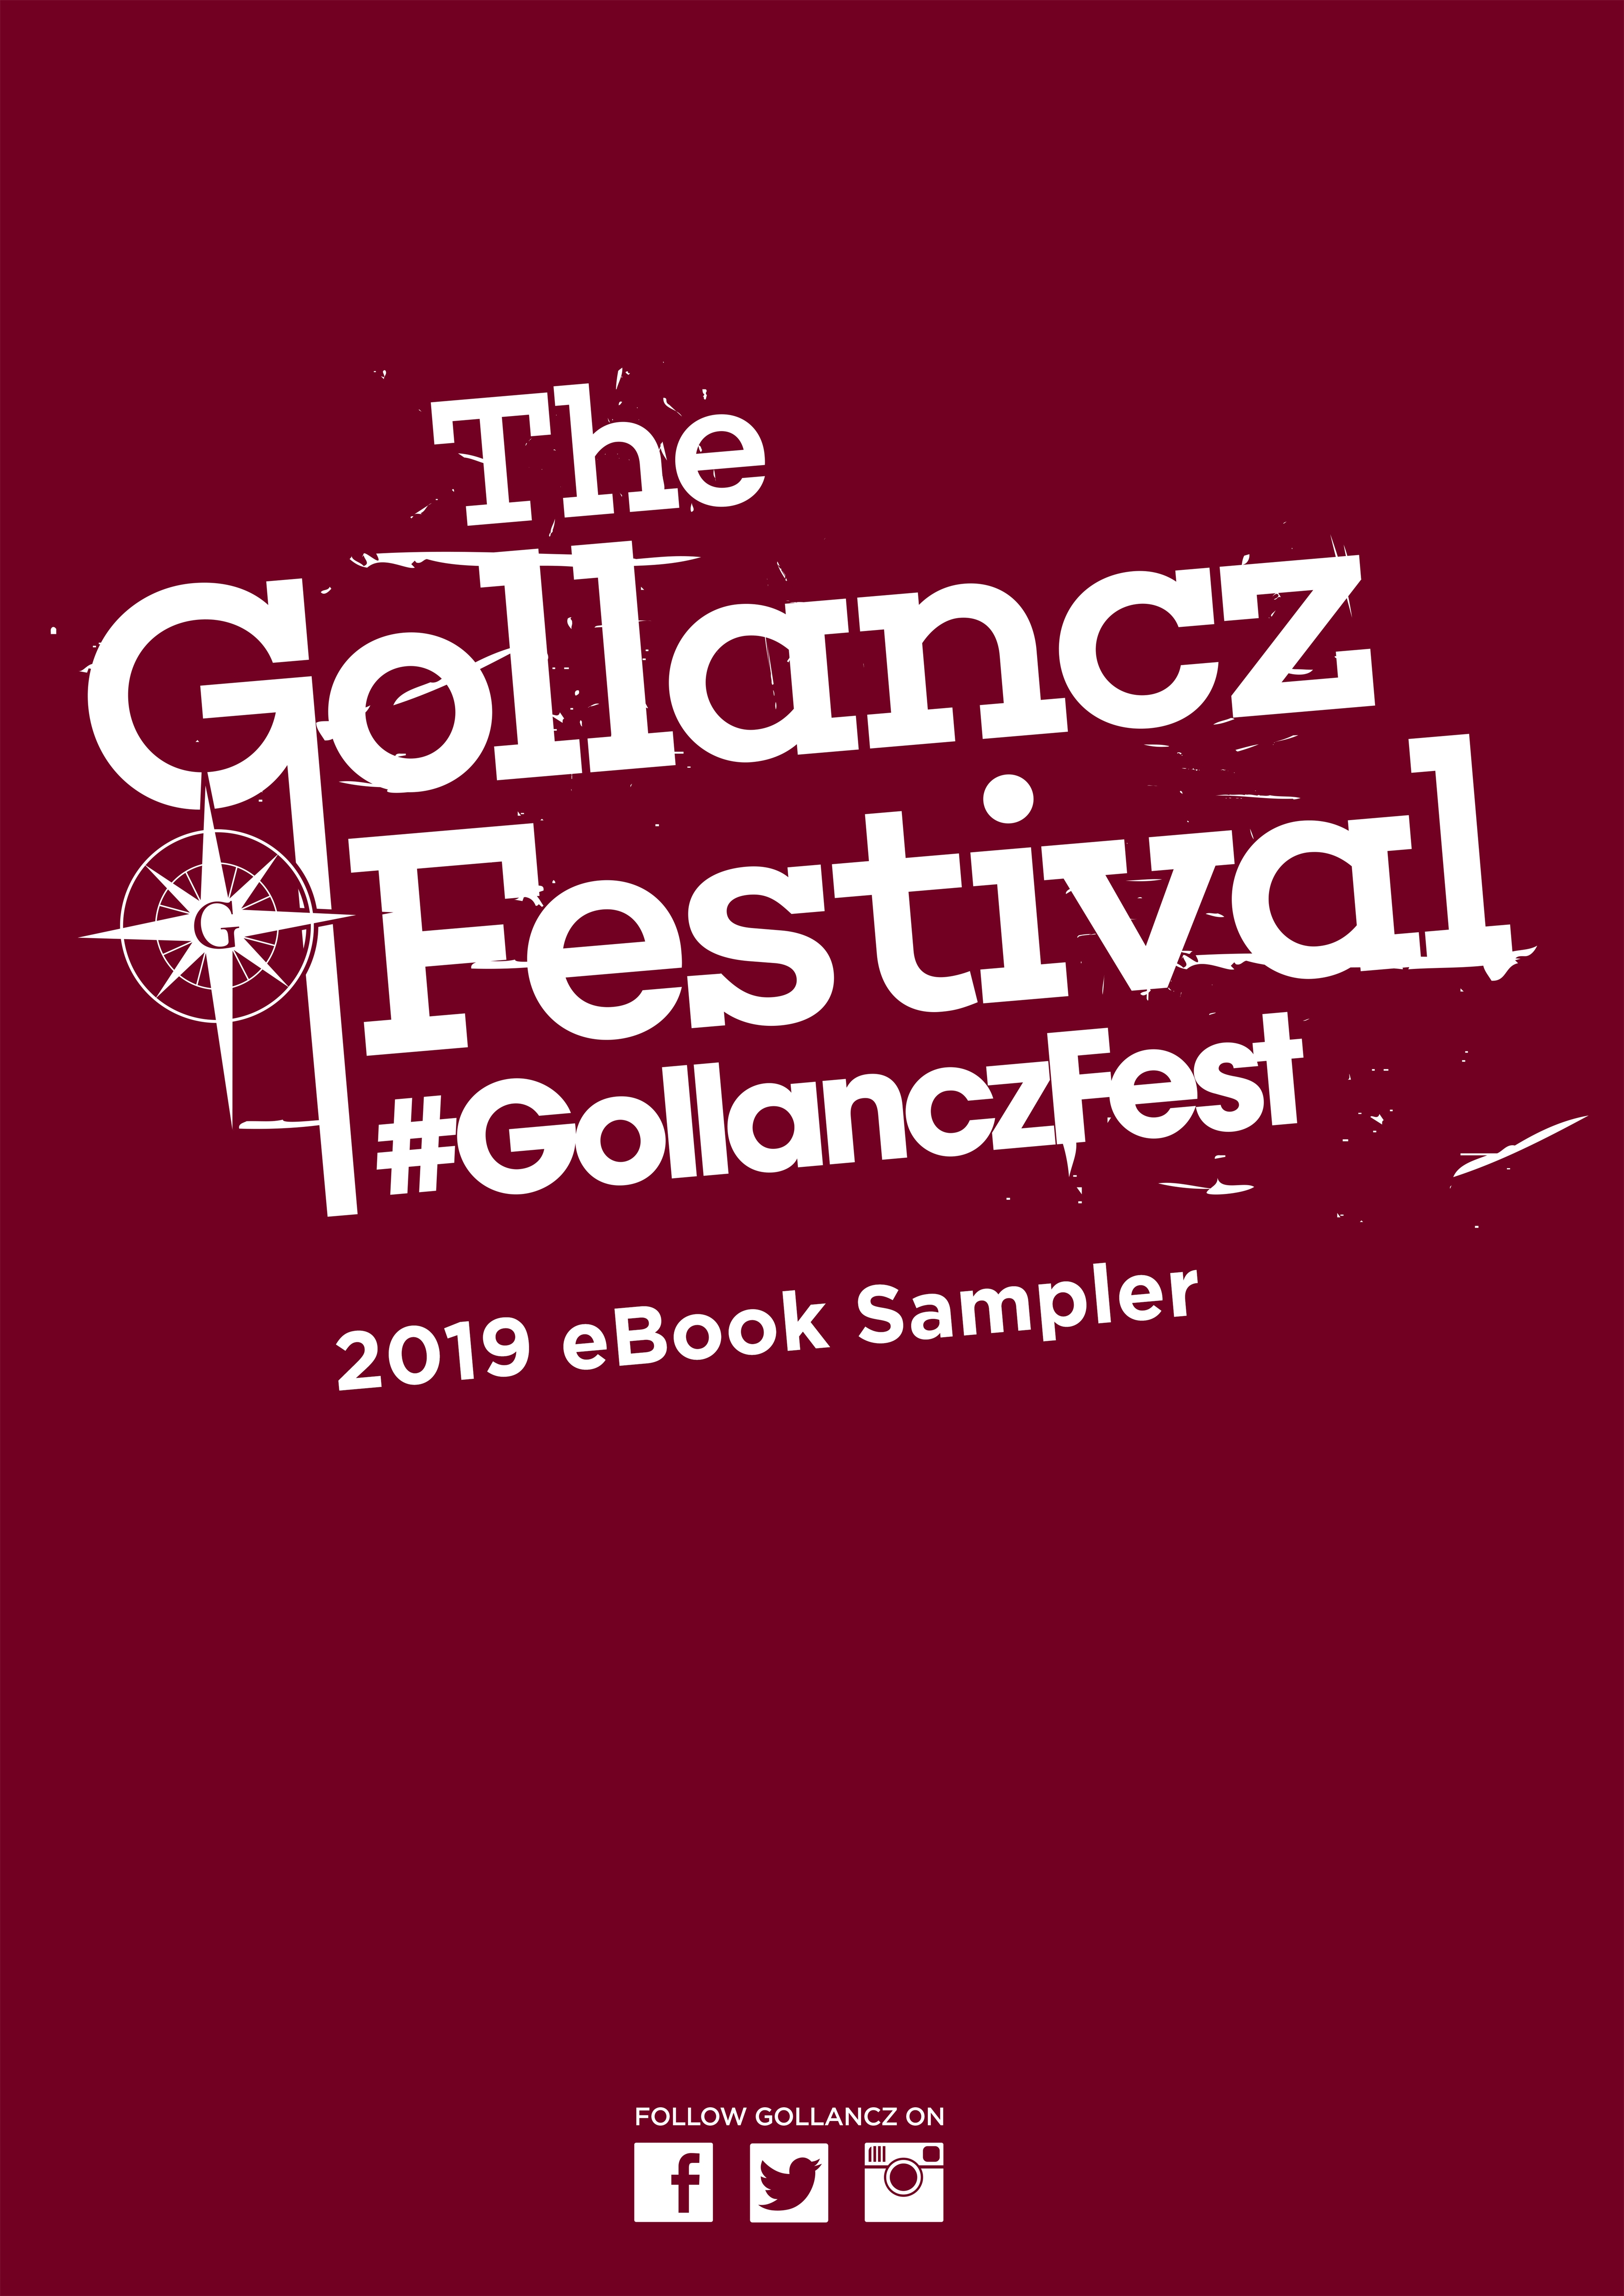 The GollanczFest 2019 eBook sampler